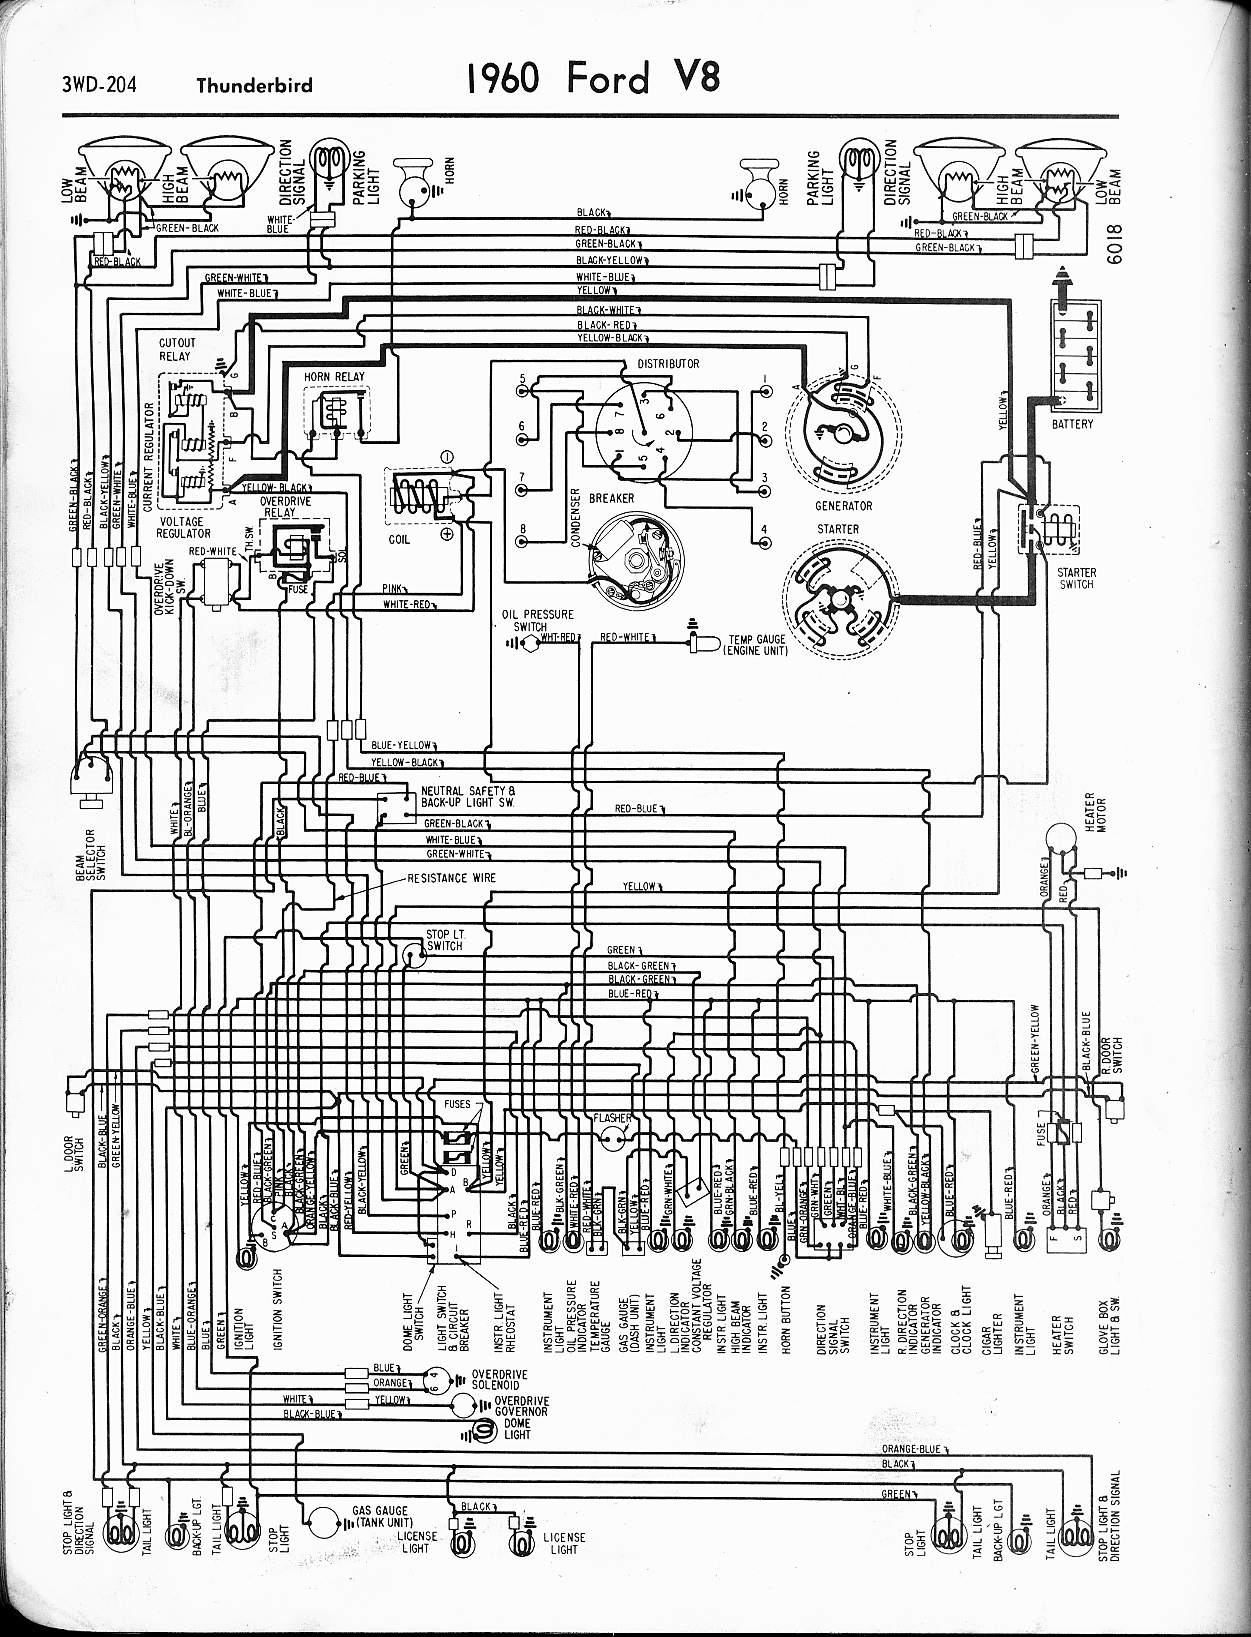 Wiring Diagram For 1988 Ford Festiva Library Saturn L100 1980 Thunderbird